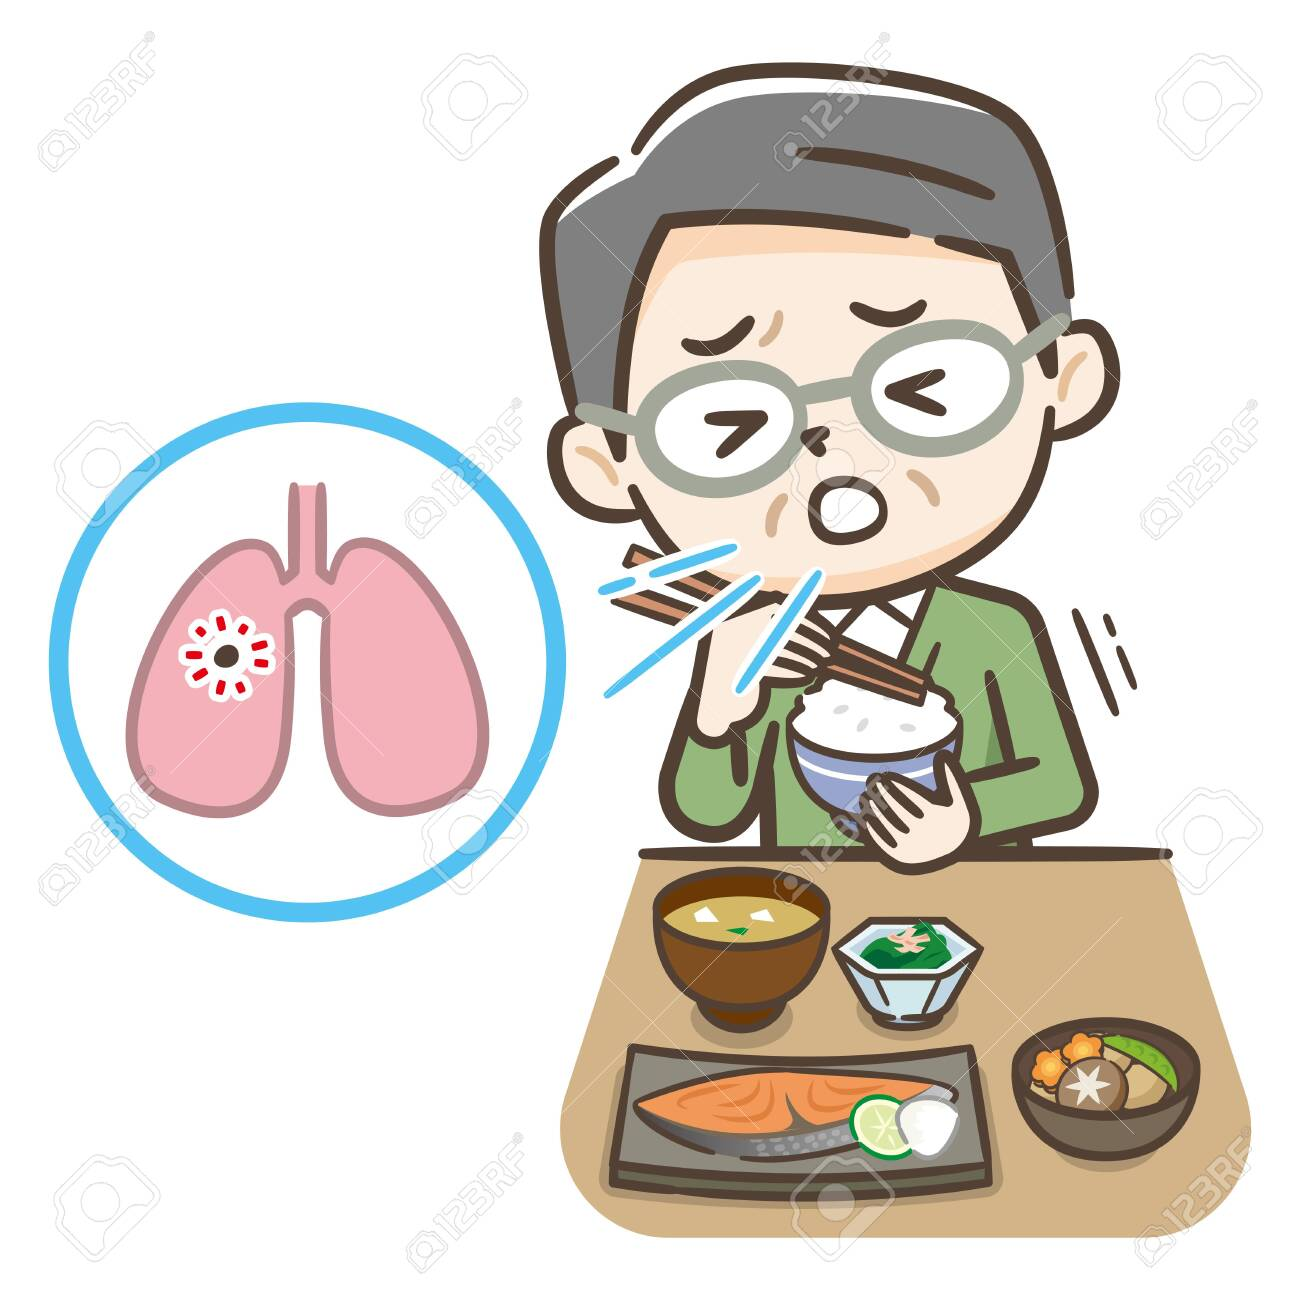 Illustration of an elderly person who aspirated during a meal. - 148945055